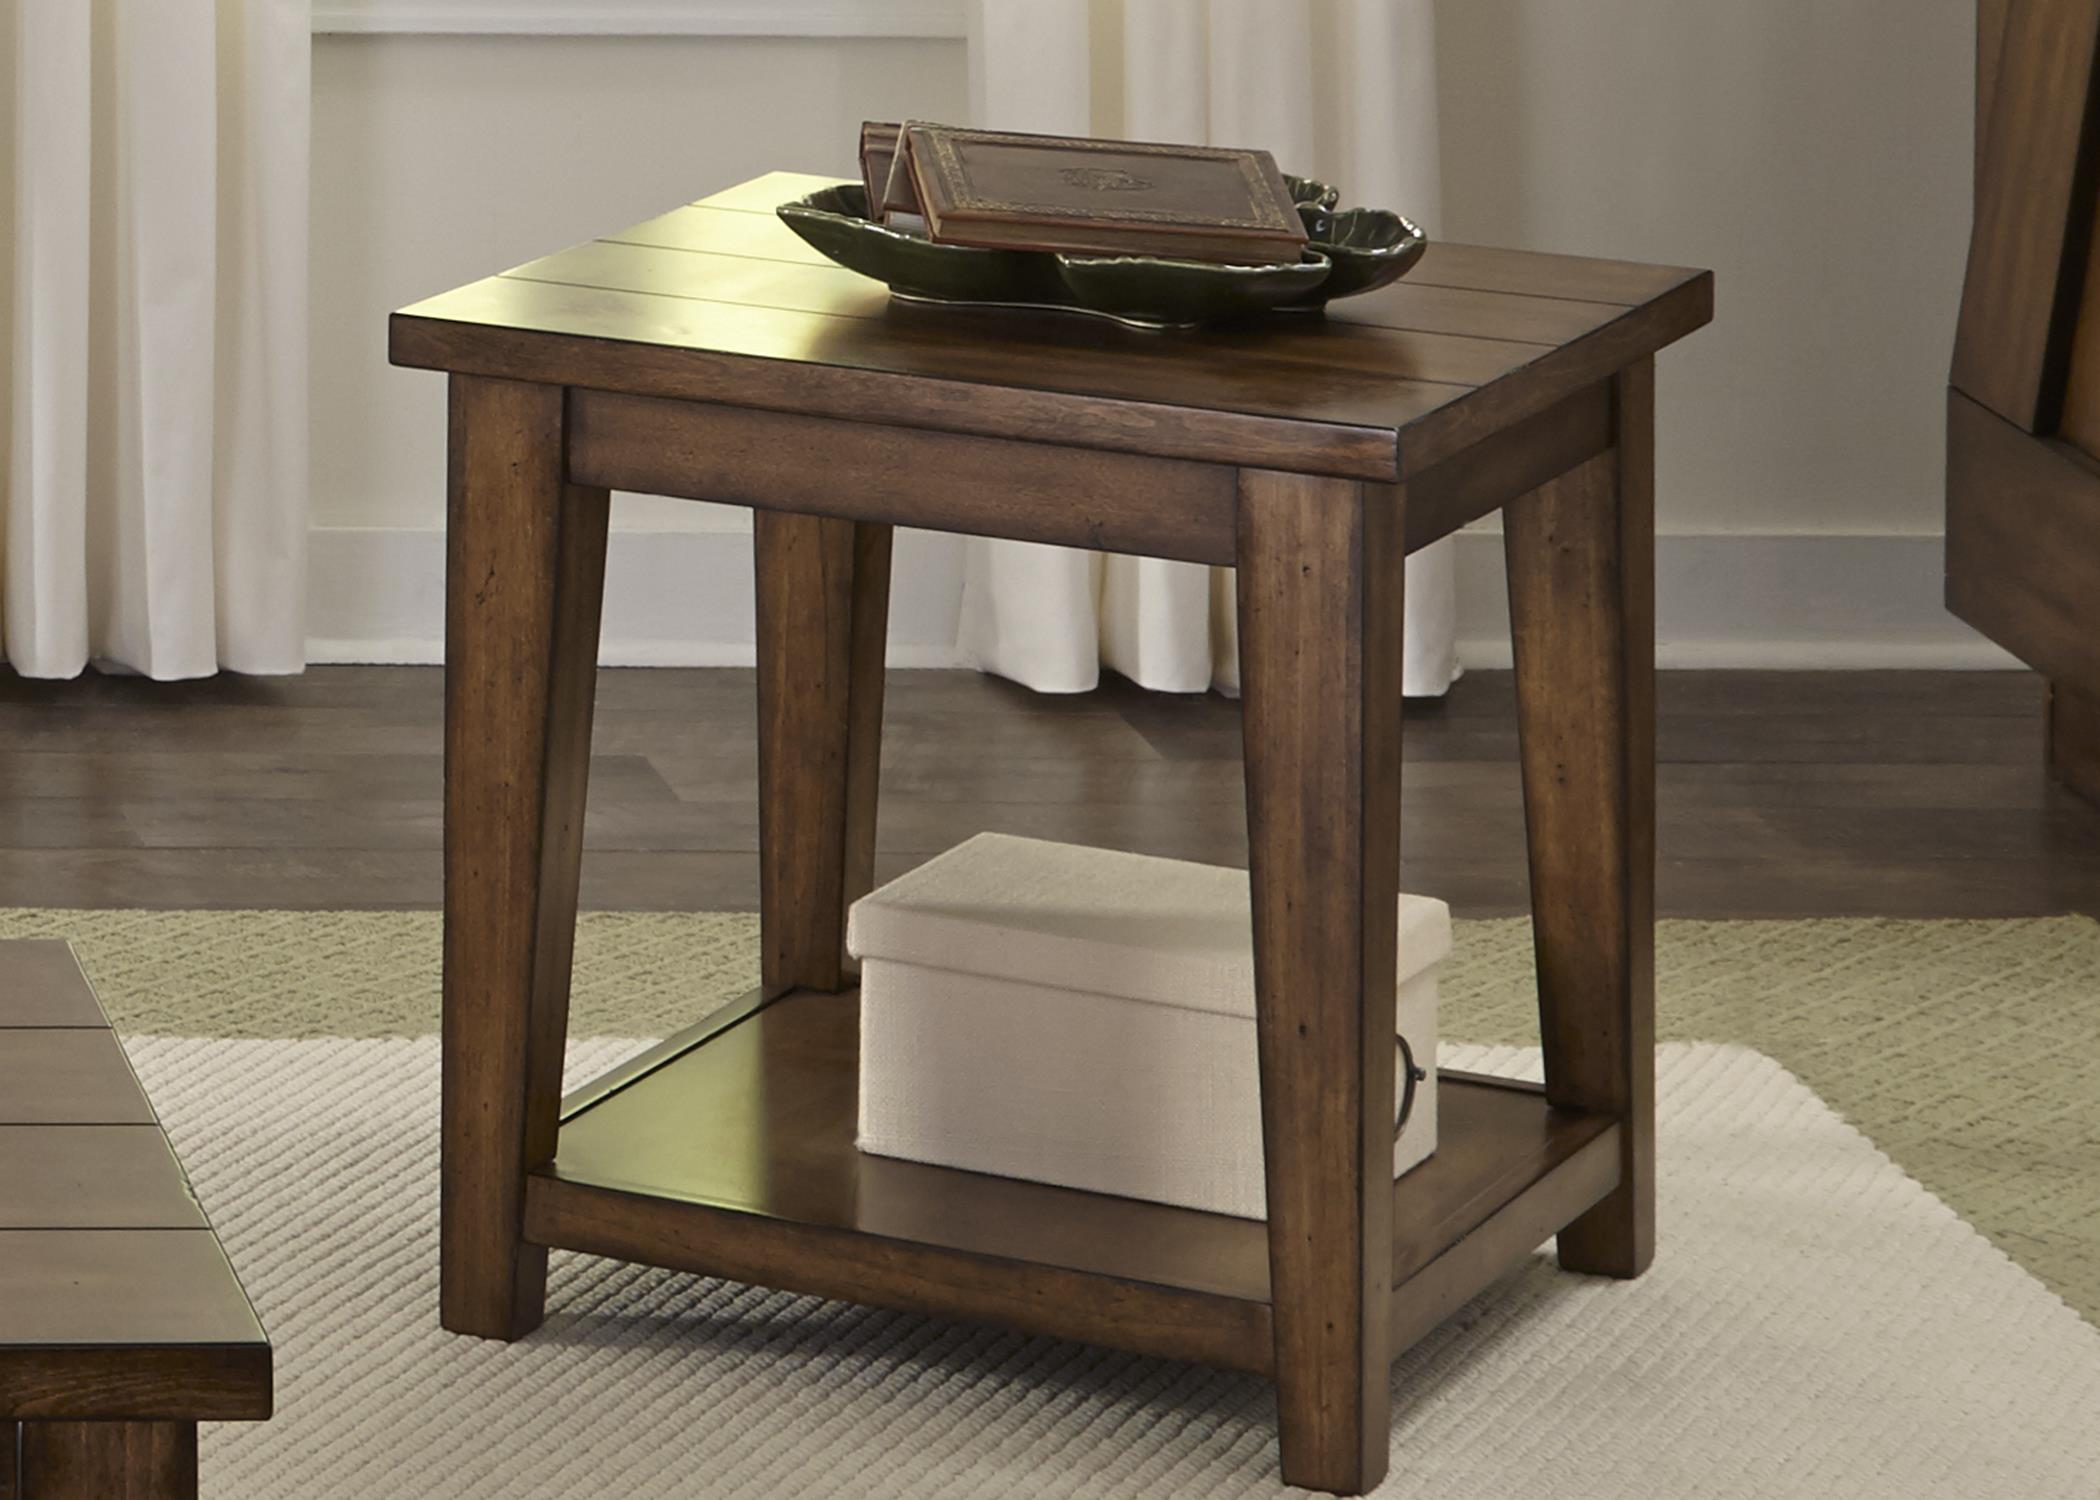 Liberty Furniture Lancaster II Occasional End Table - Item Number: 712-OT1020